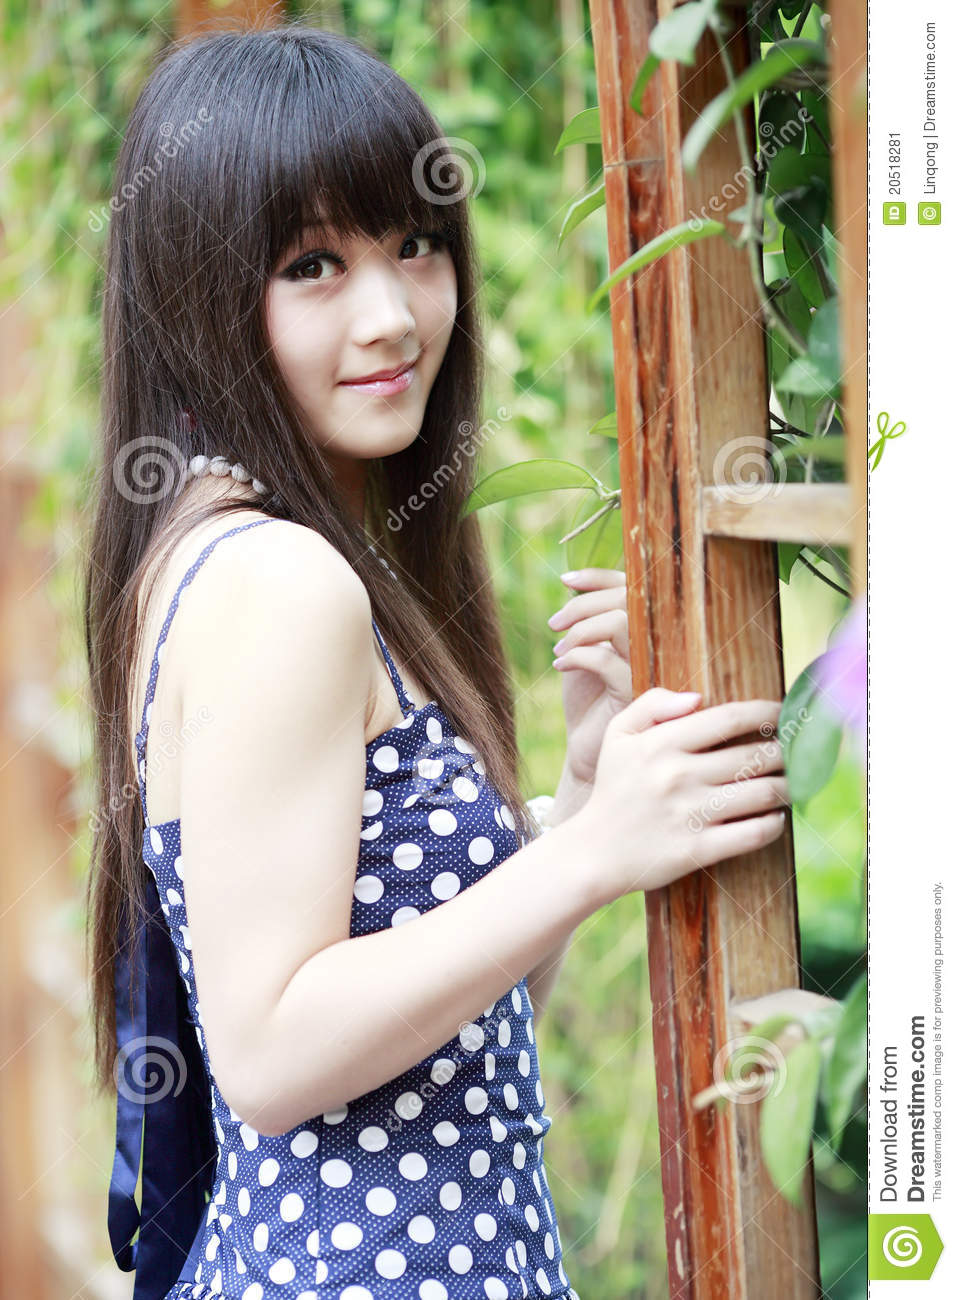 Chinese girl photo